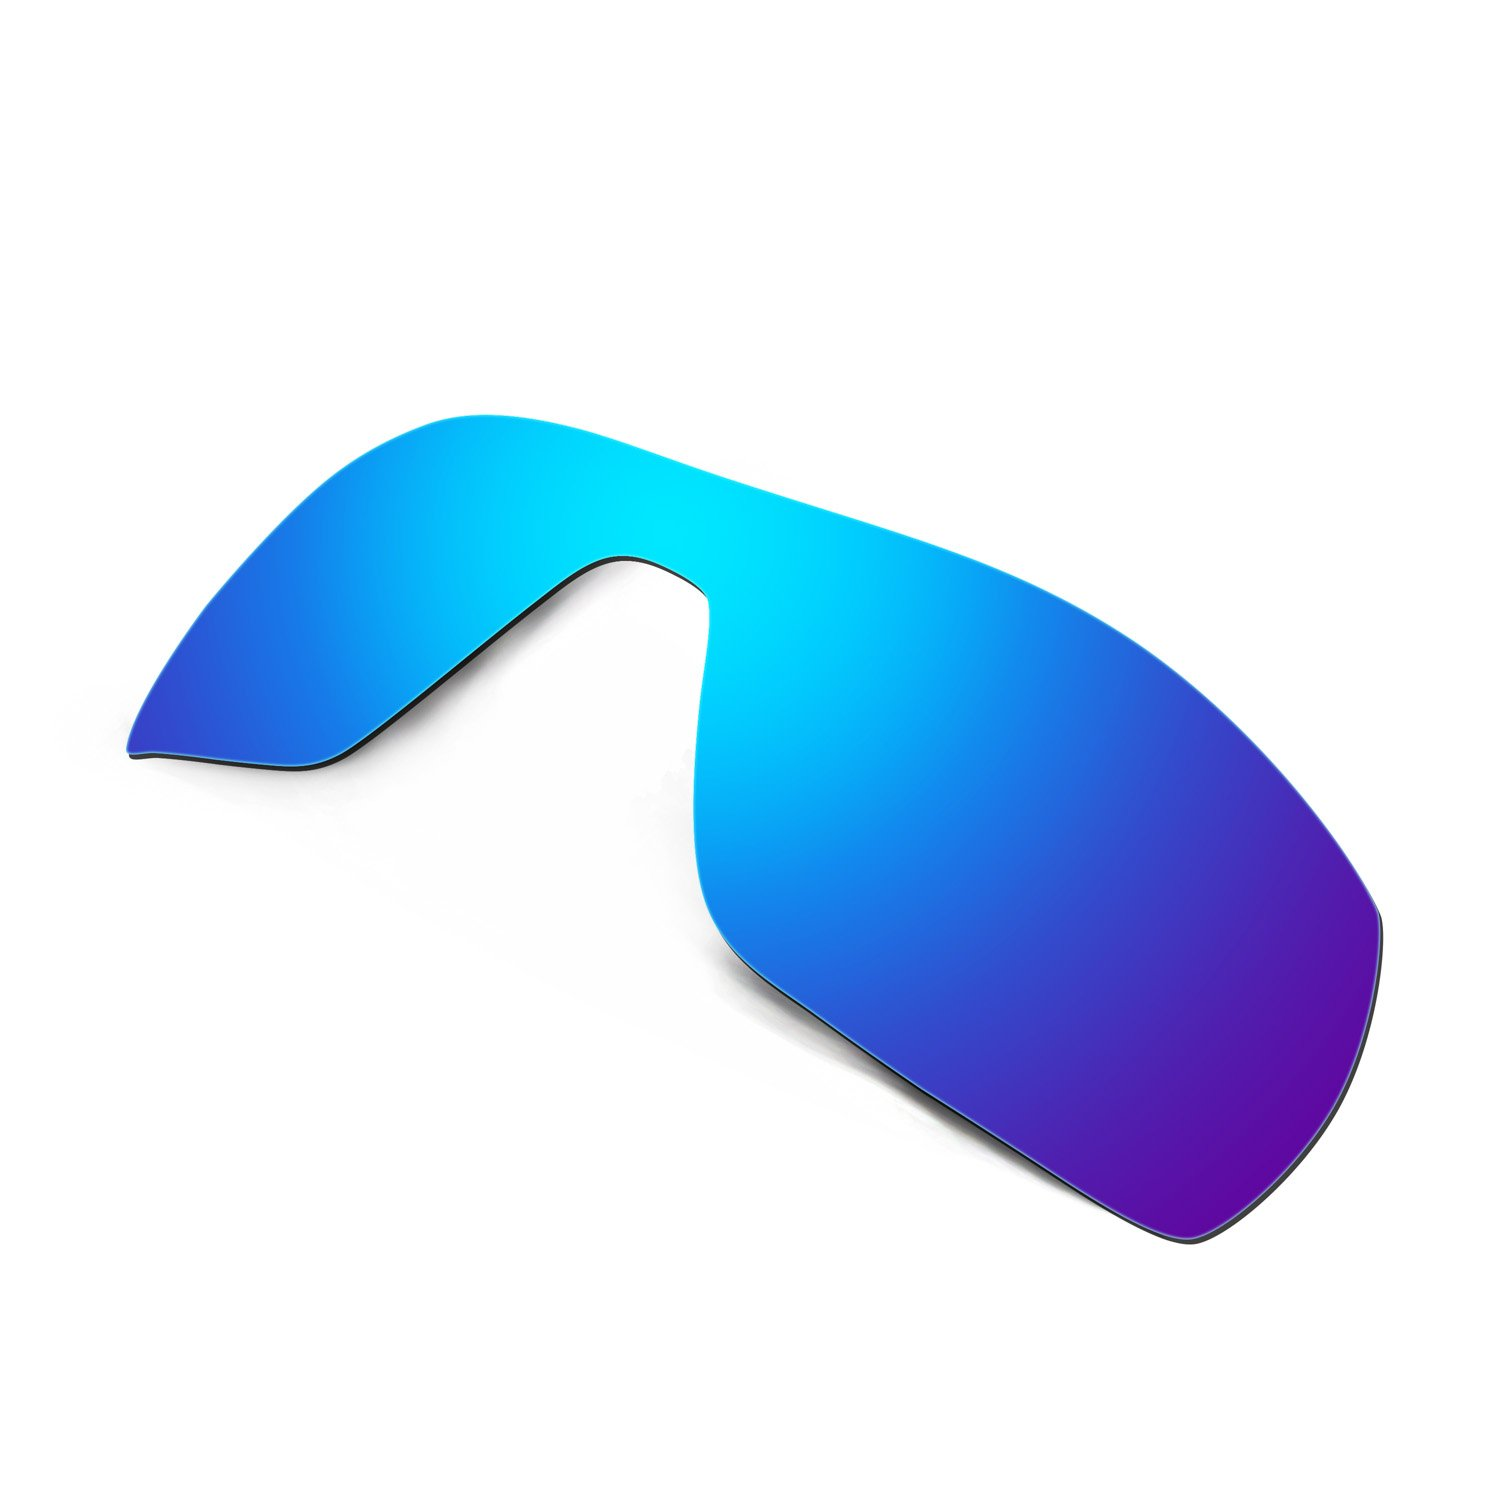 HKUCO Mens Replacement Lenses For Oakley Offshoot Blue/Black/24K Gold Sunglasses J4ssUq0C